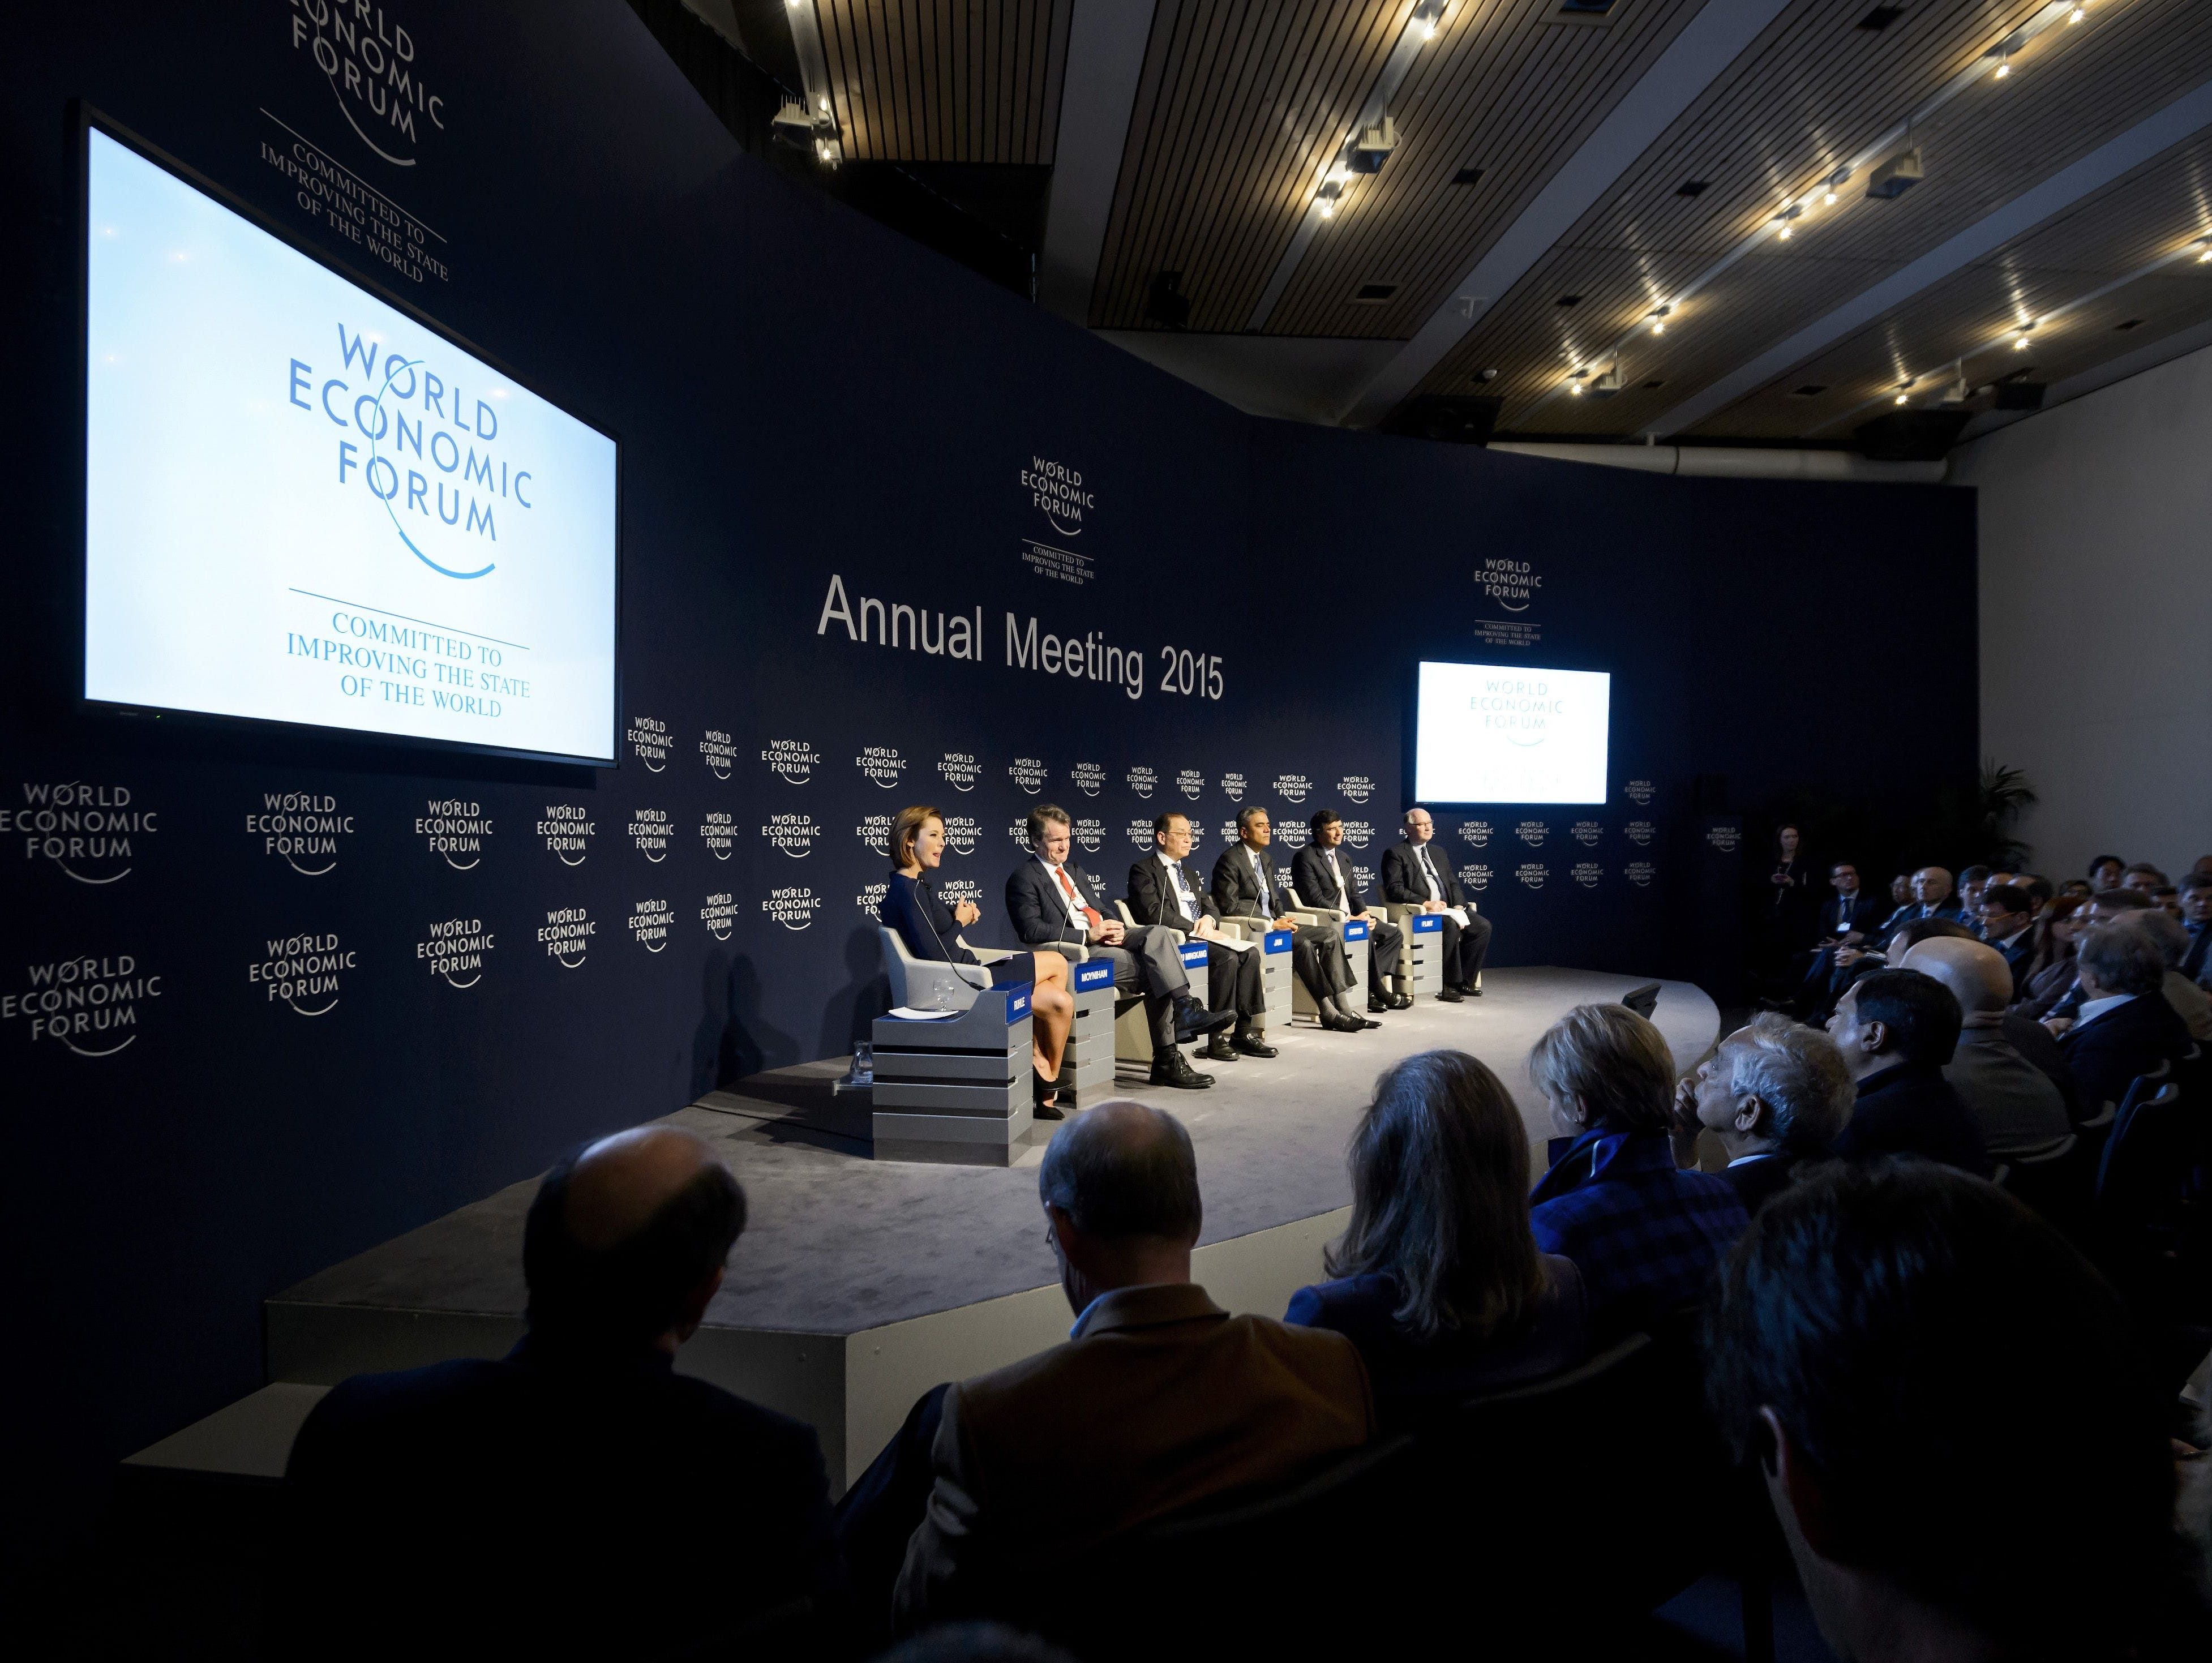 Participants attend a discussion at the World Economic Forum annual meeting on Wednesday in Davos.